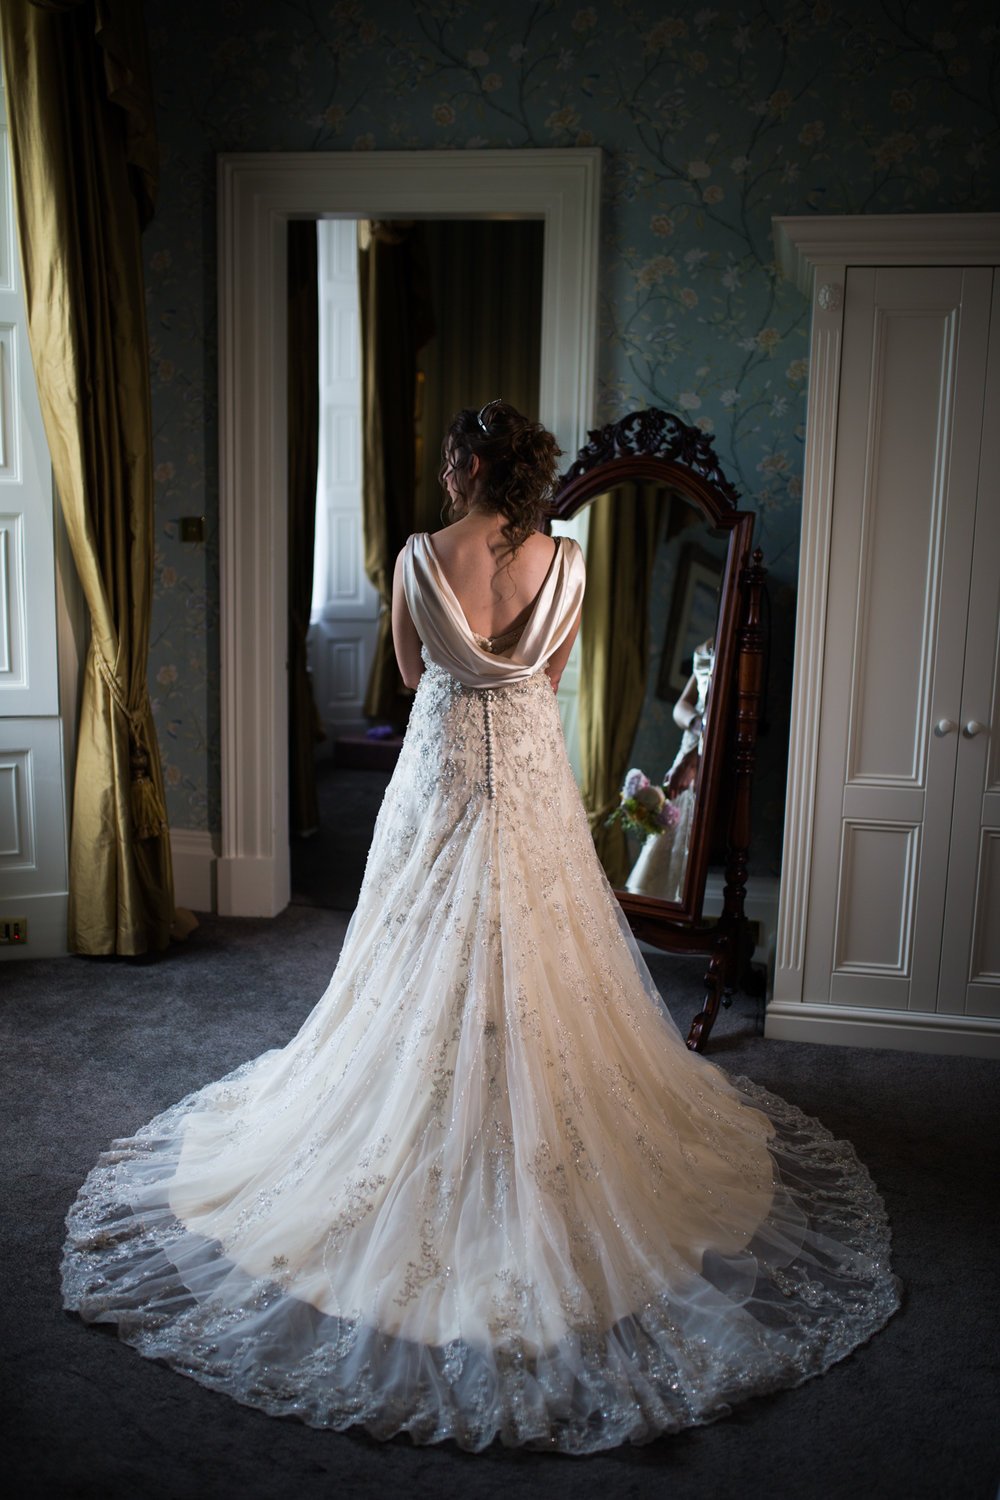 wynyard hall wedding photographer duncan mccall-1014.jpg